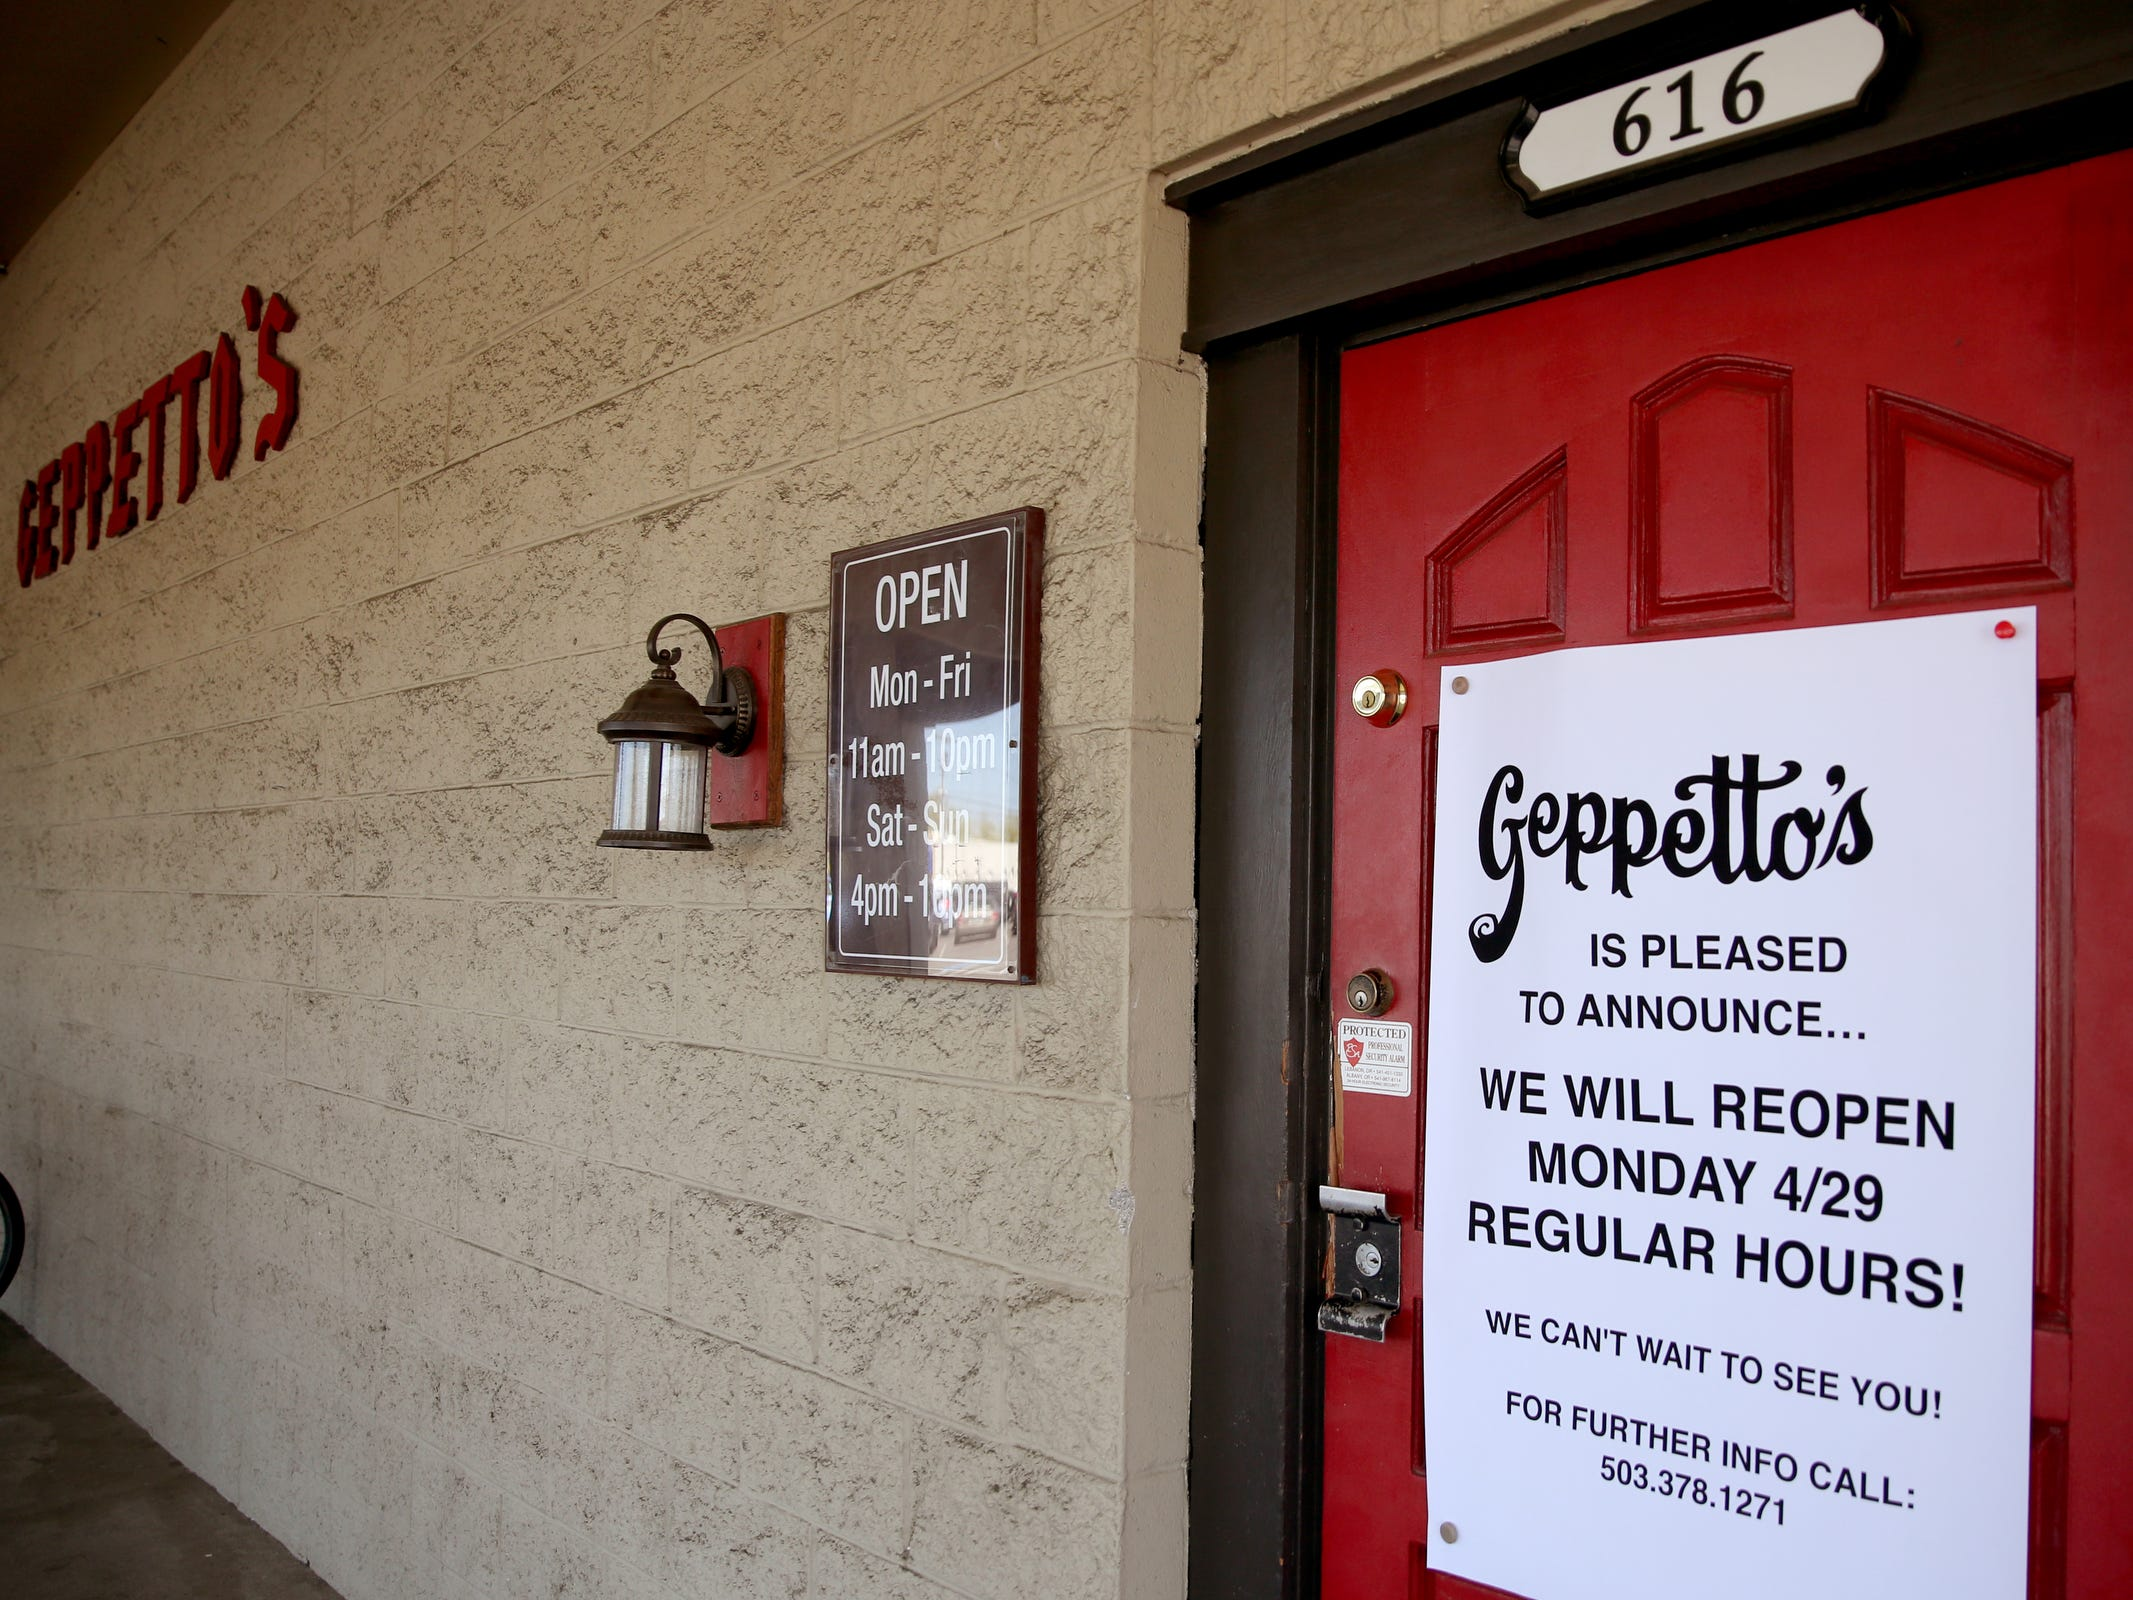 Geppetto's Italian Restaurant is open again after a fire at a neighboring business caused smoke damage on March 16. Photographed in Salem on April 29, 2019.